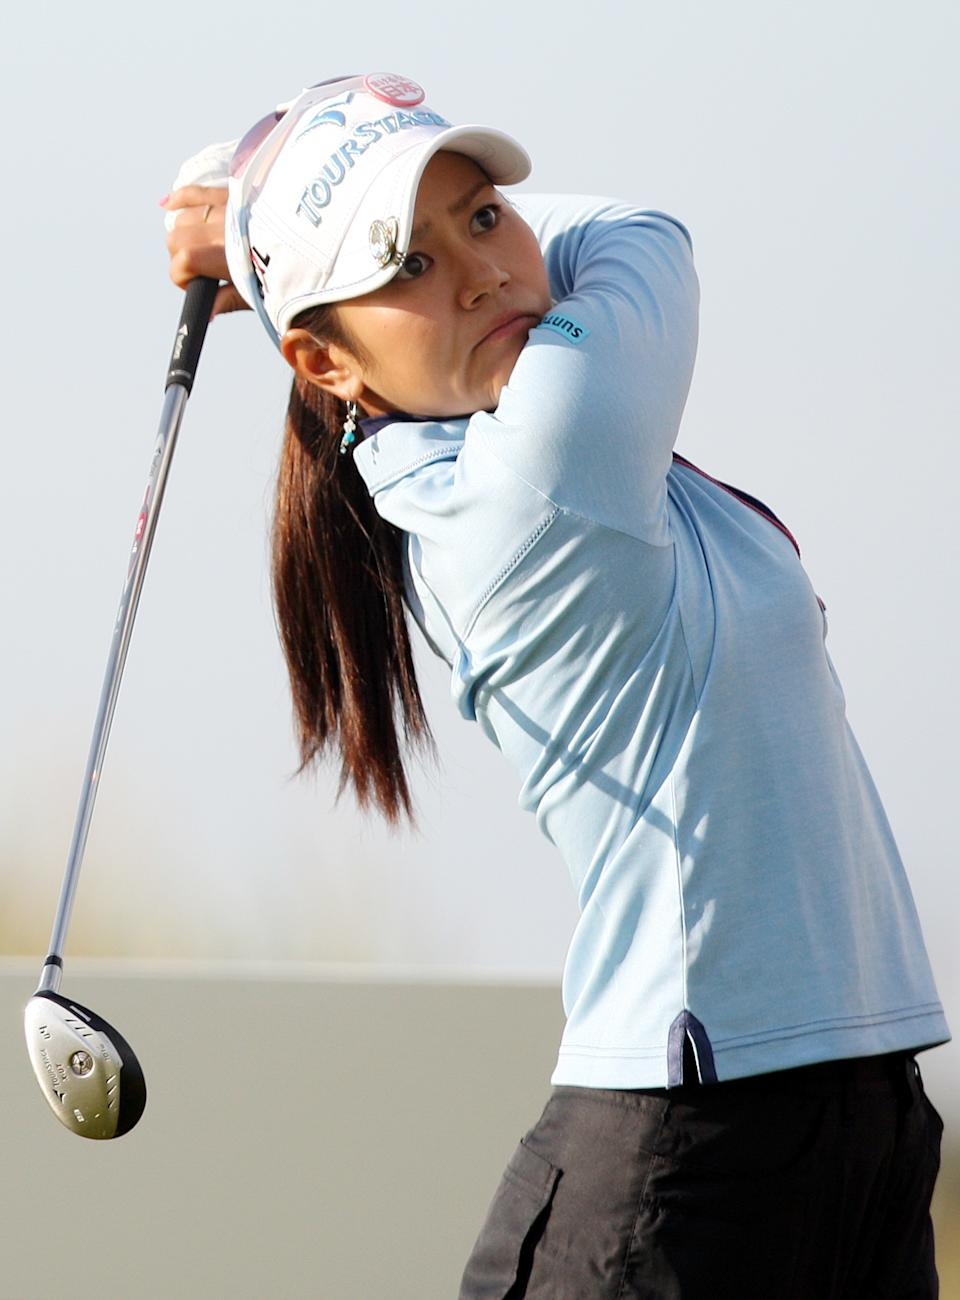 Japan's Ai Miyazato, play's her tee shot from the third during the first round of the Women's British Open at Carnoustie Golf Club, Carnoustie, Scotland, Thursday July 28, 2011.(AP Photo/Scott Heppell)